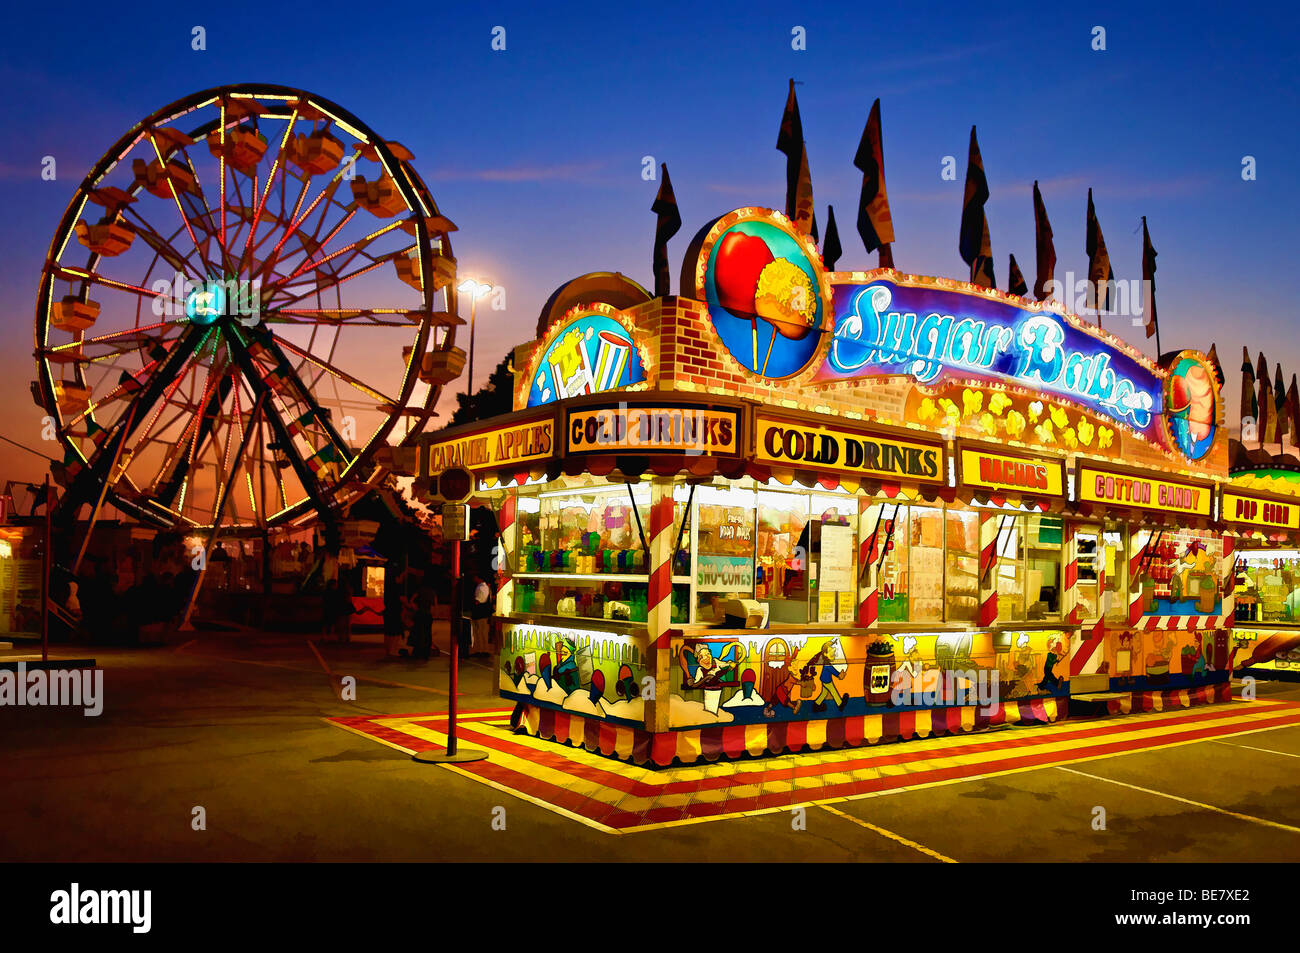 Painting Effect of Midway at Sunset at the Kentucky State Fair in Louisville - Stock Image